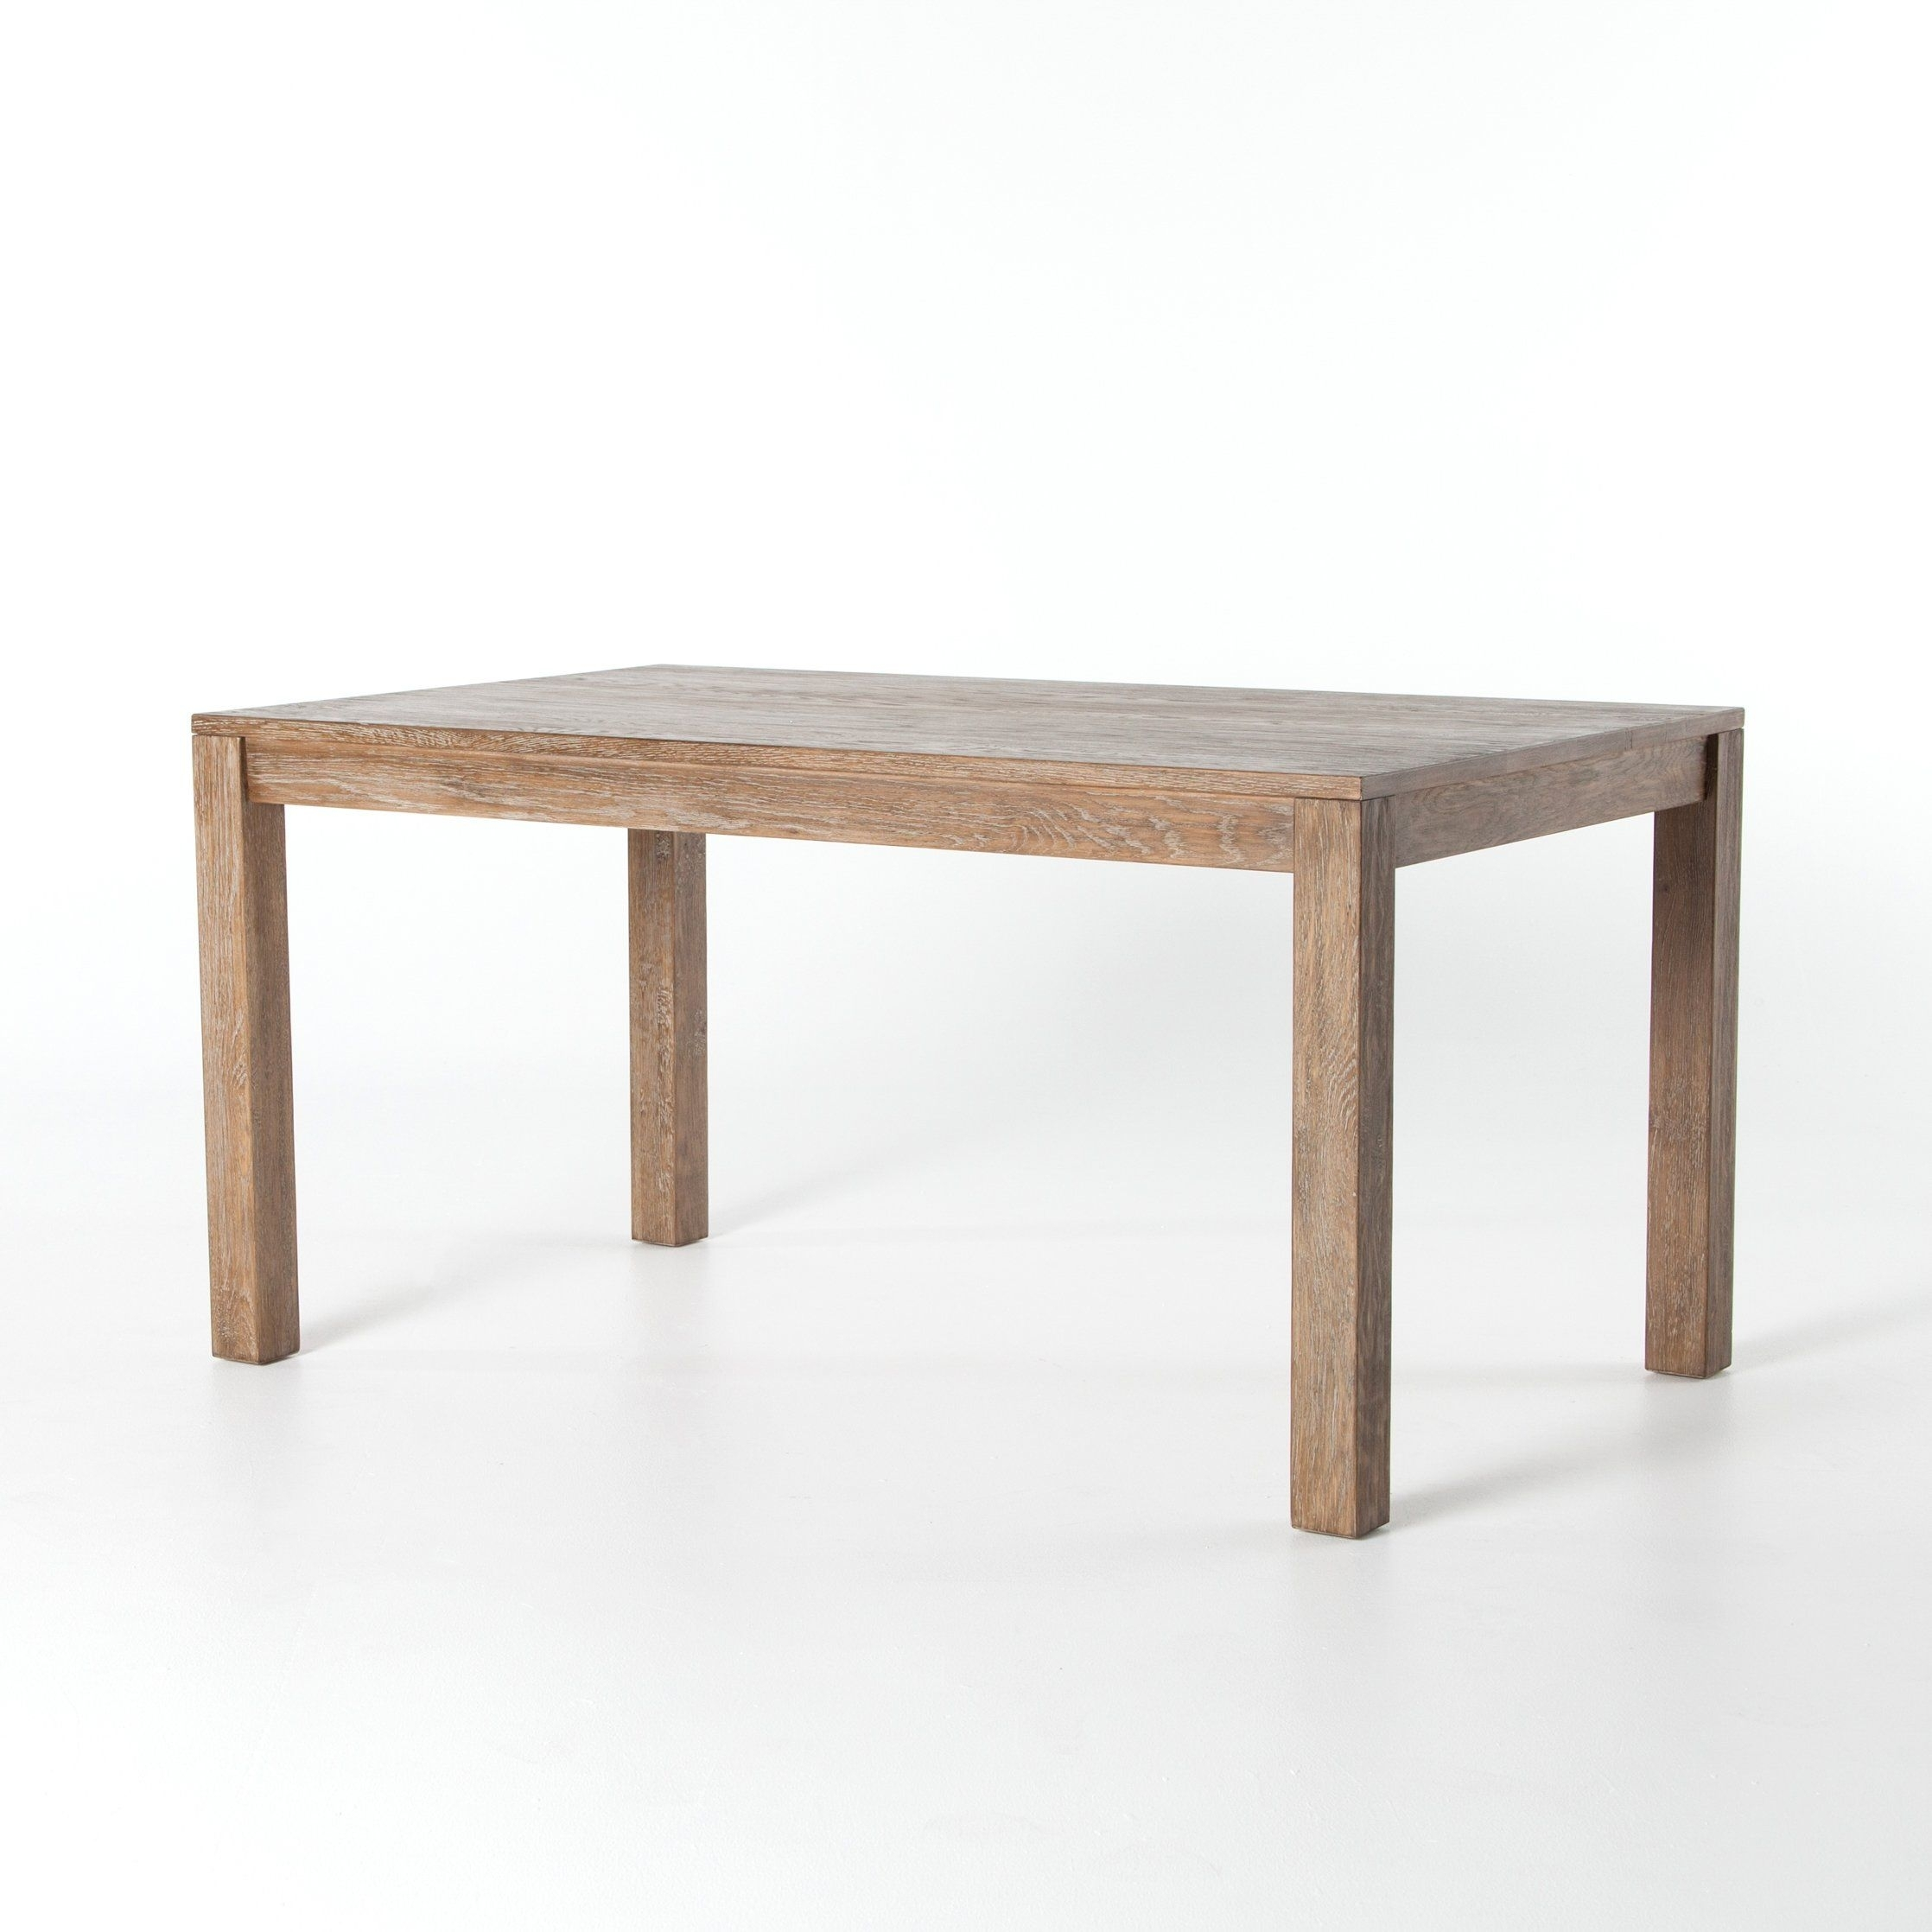 Caden Dining Table: Light Burnt Oak | Dining Table Lighting And Products Regarding Most Recently Released Caden Rectangle Dining Tables (Image 6 of 20)